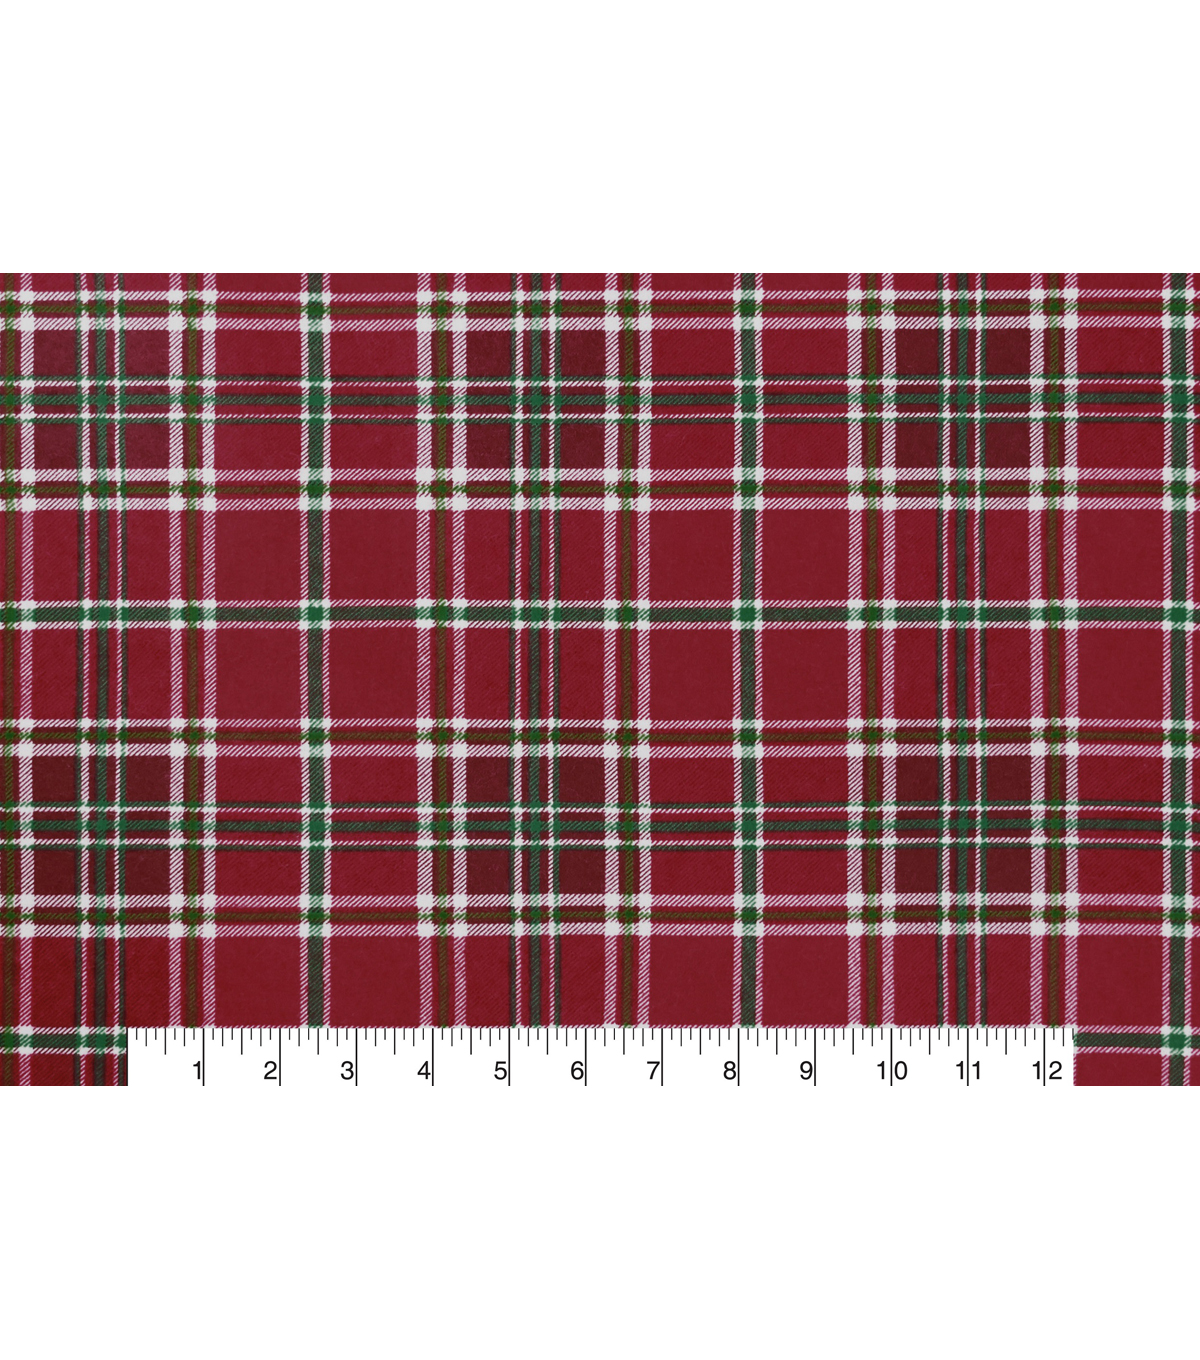 Snuggle Flannel Fabric -Holly Plaid